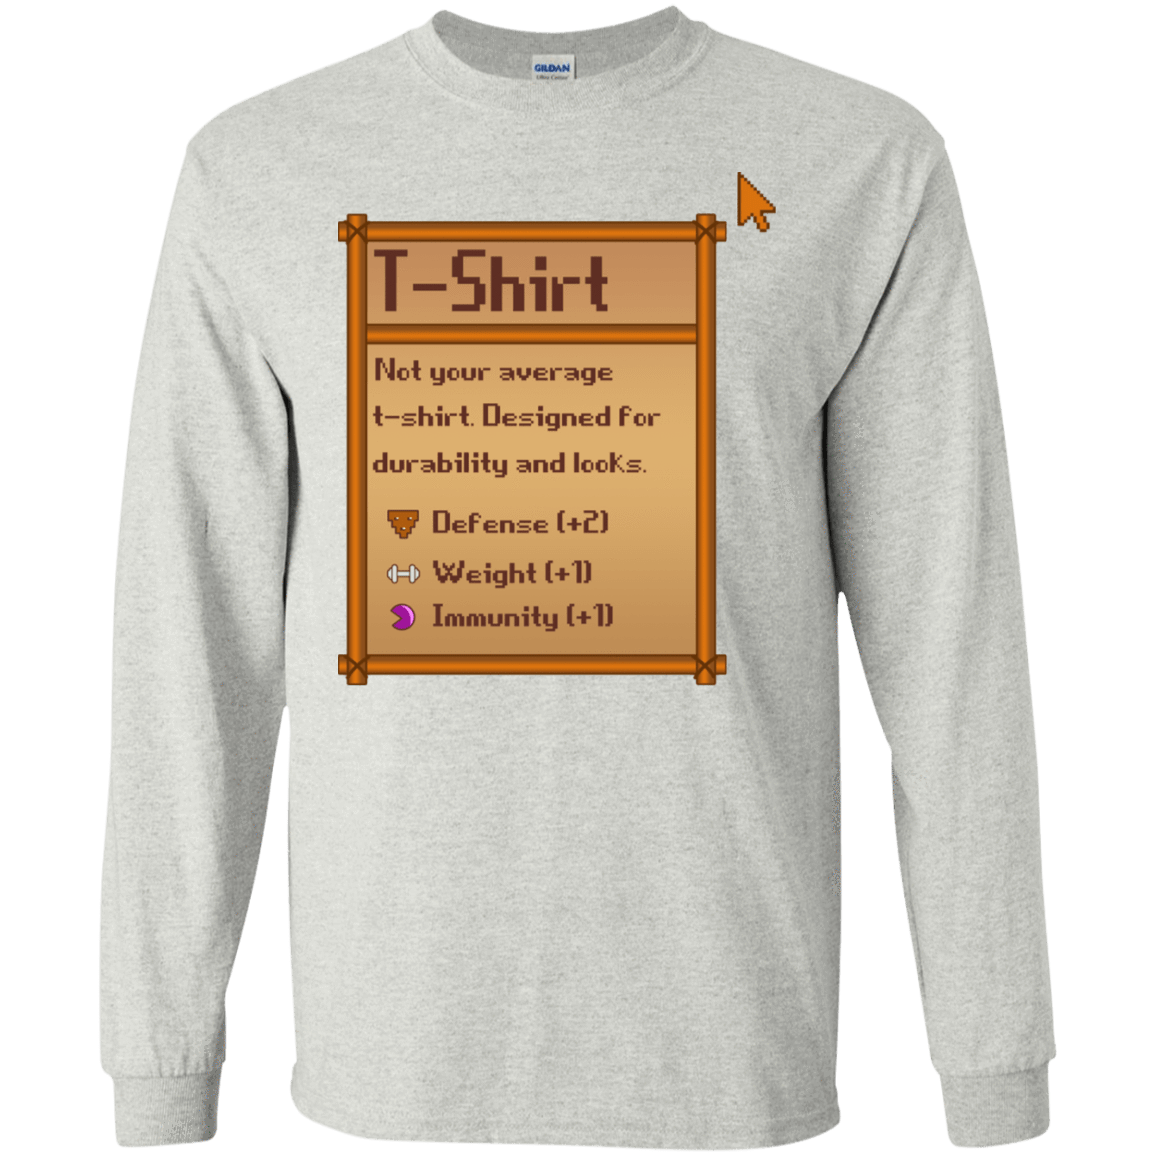 Stardew Valley T-Shirt 30-2112-72955964-10754 - Tee Ript